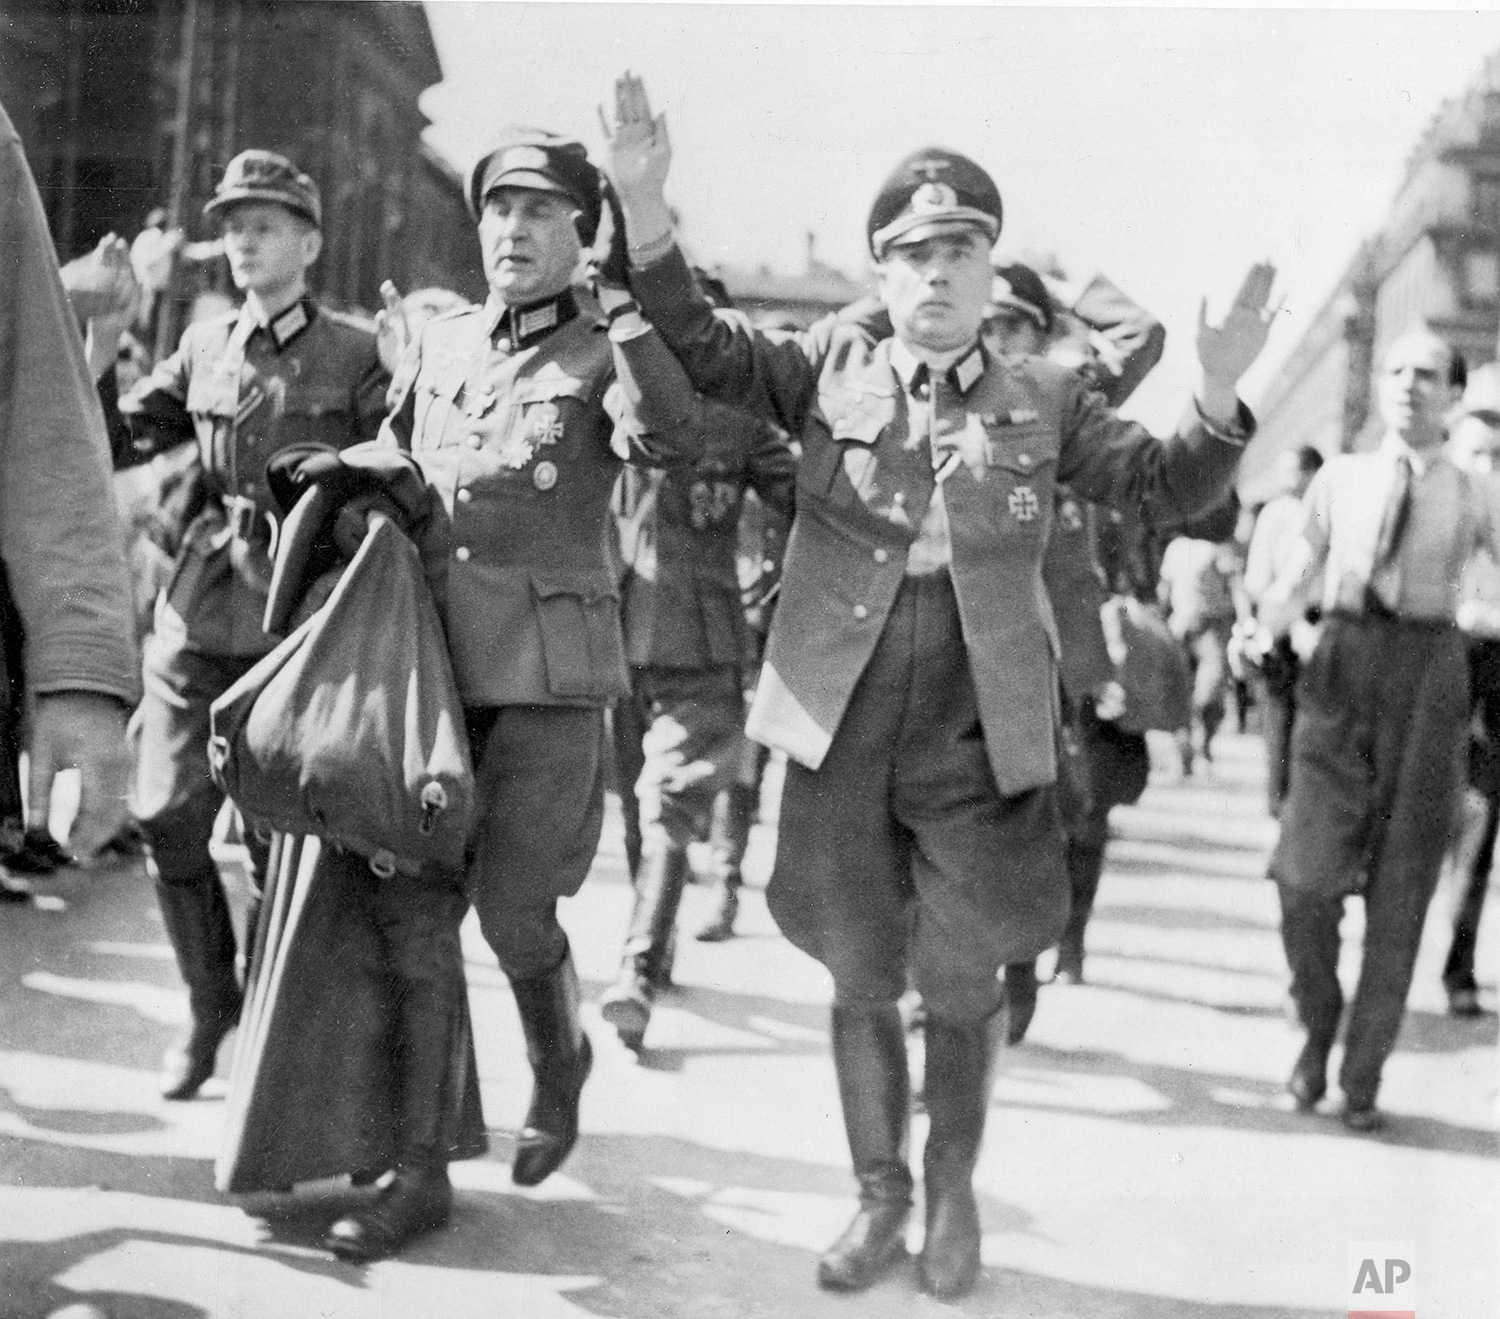 High German officers, captured by French patriot forces in Paris, are marched through the streets of the French capital with their hands in the air, during the freeing of the city, Aug. 28, 1944. This is one of a series of the first originals from Paris. (AP Photo)